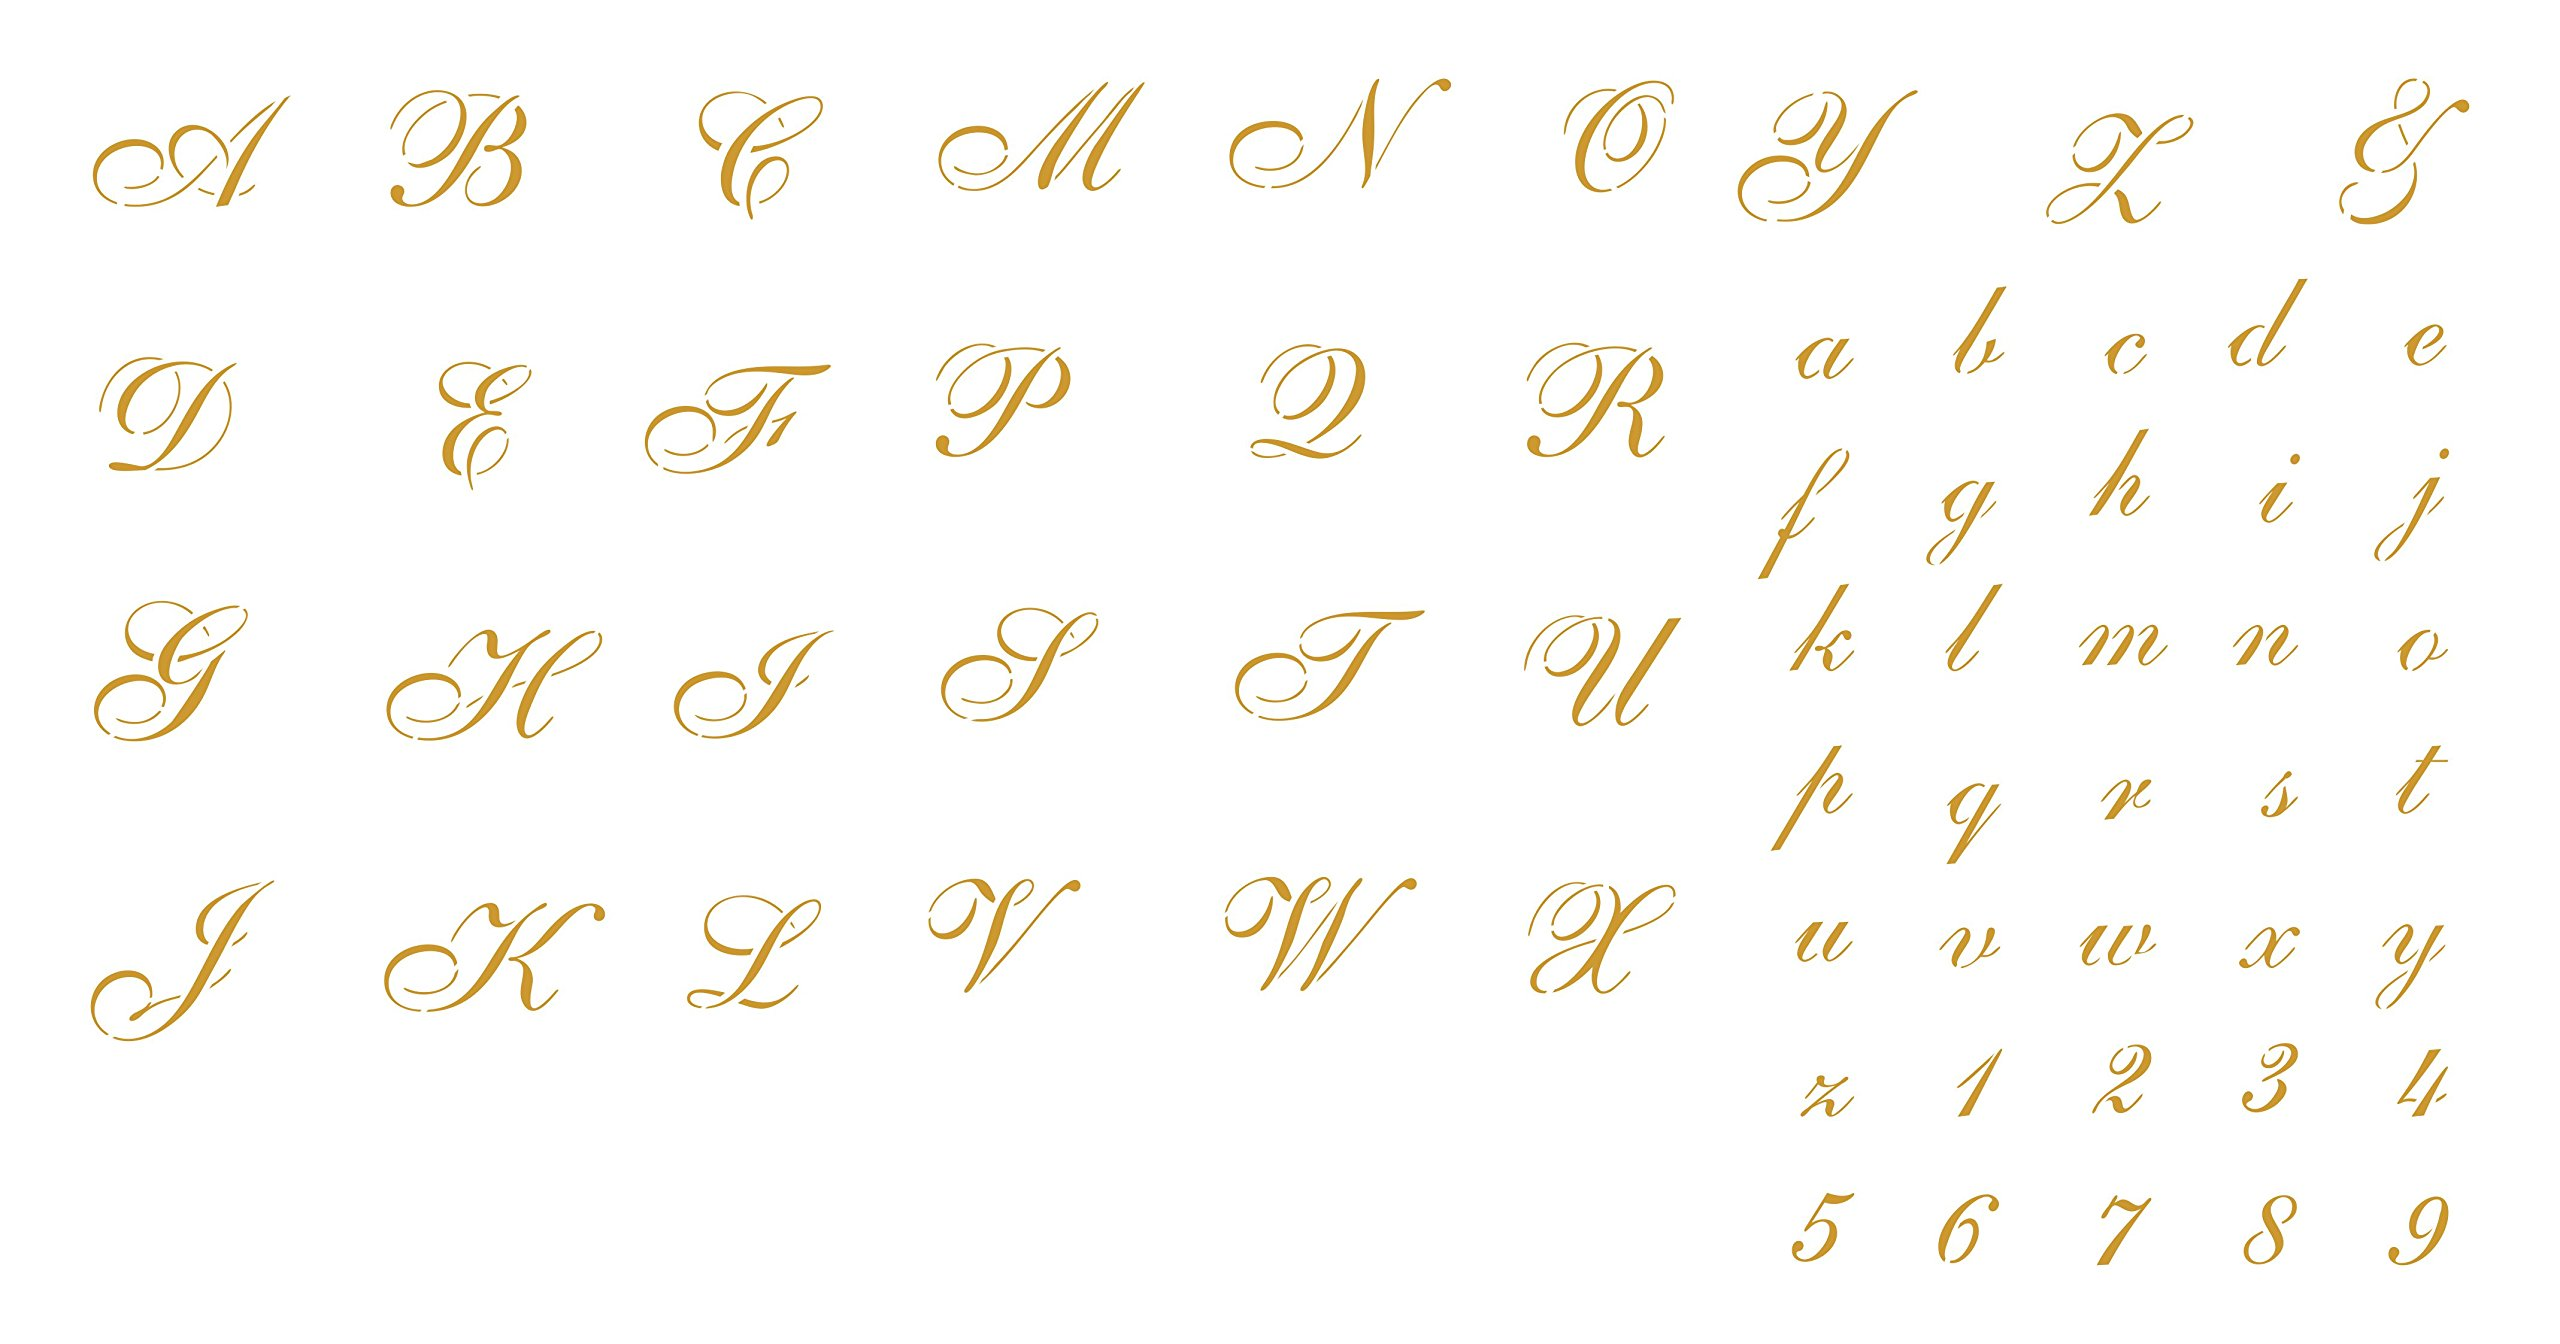 Cursive Letter Stencils 1'' (3x sheet 8'' x 12'') Reusable Stencils for Painting - Best Quality Scrapbooking Alphabet ABC Font Stencil Ideas - Use on Walls, Floors, Fabrics, Glass, Wood, Cards, and More...